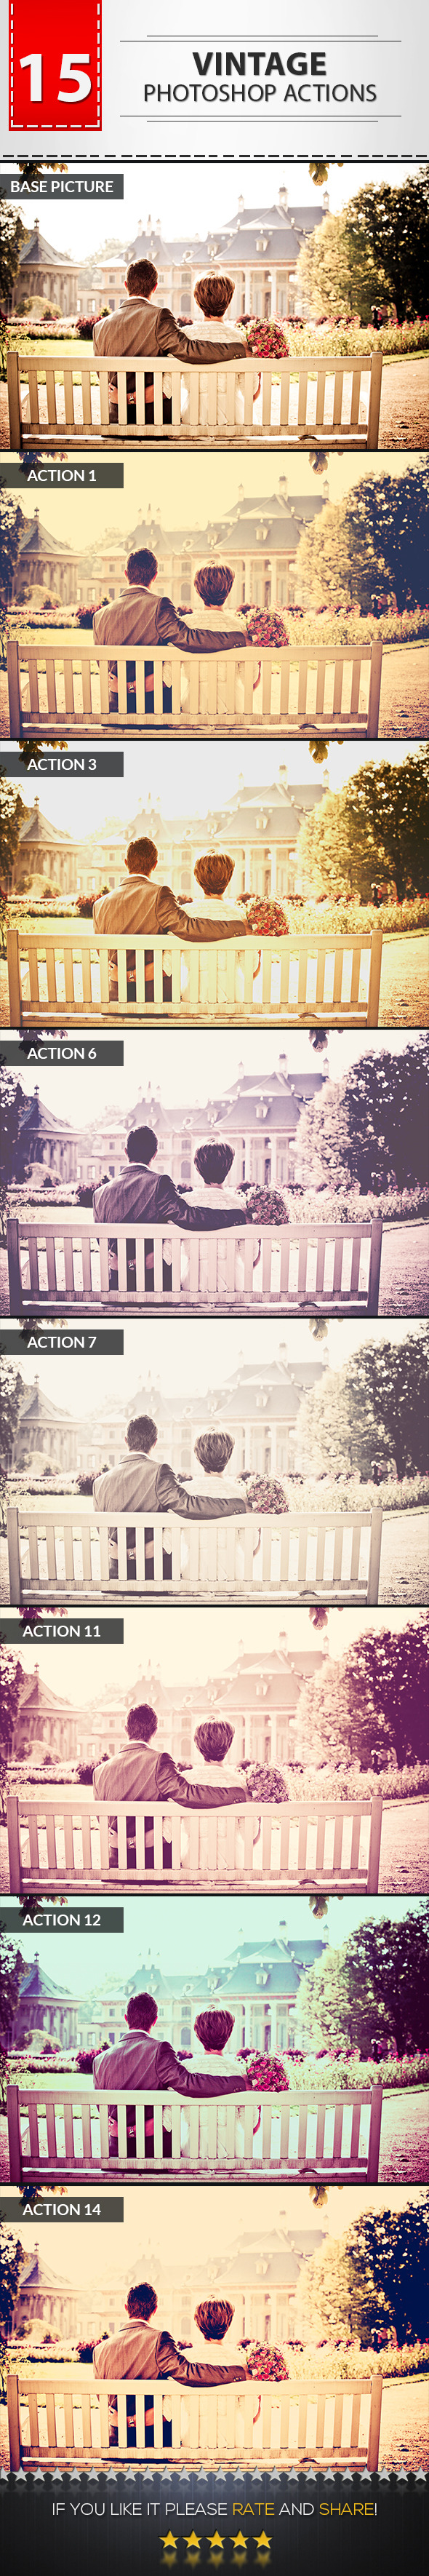 GraphicRiver 15 Vintage Photoshop Actions 9401942